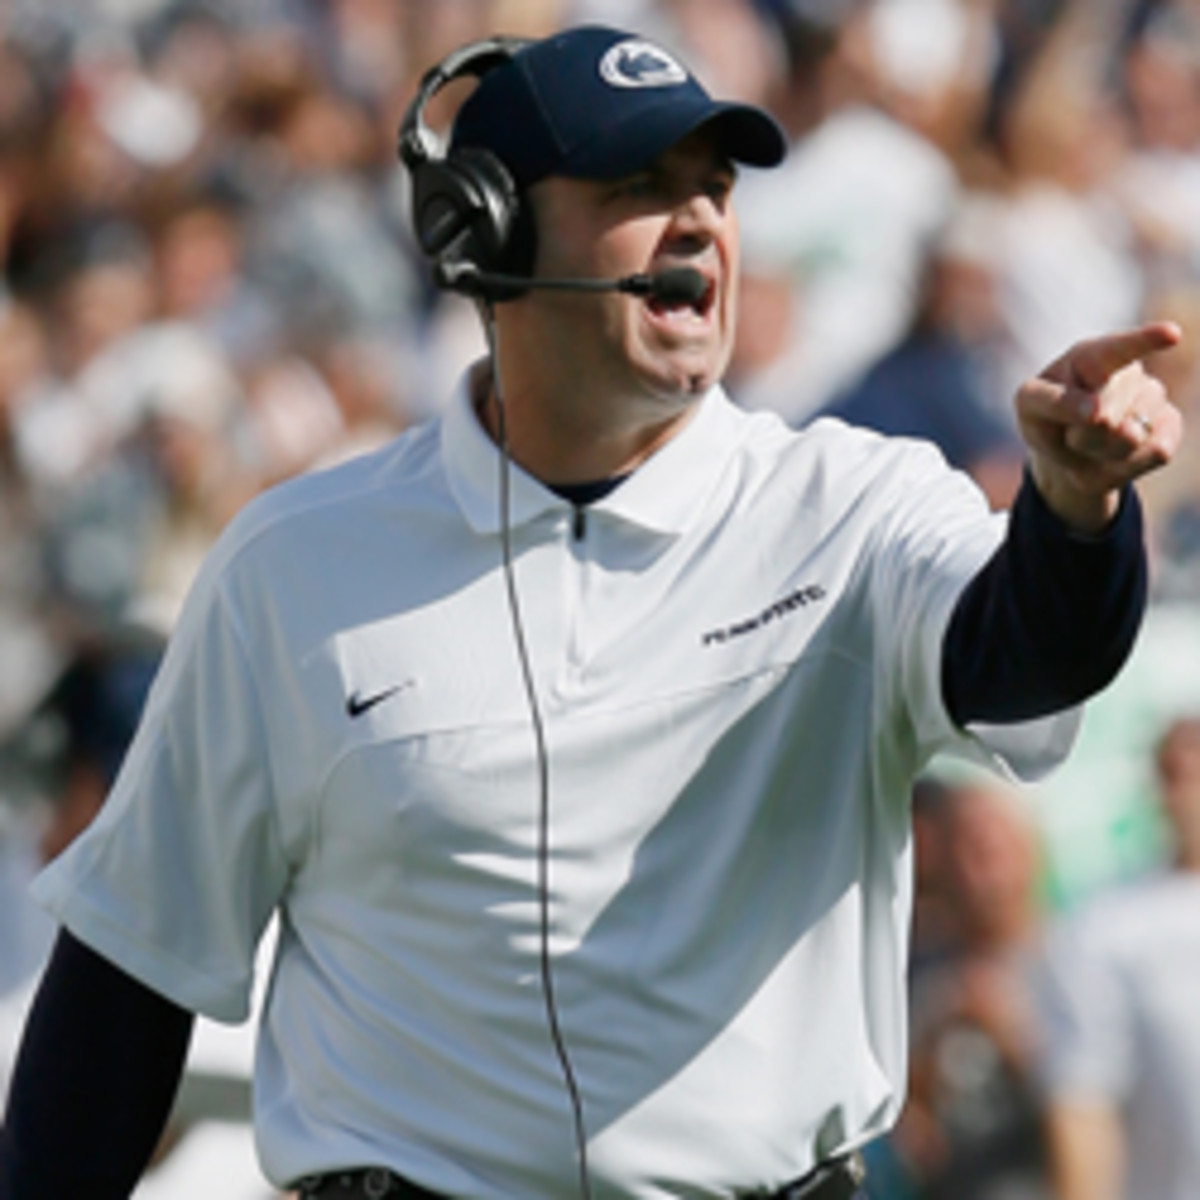 The Cleveland Browns have interviewed Penn State's Bill O'Brien for their open head coaching position.. (Rob Carr/Getty Images)